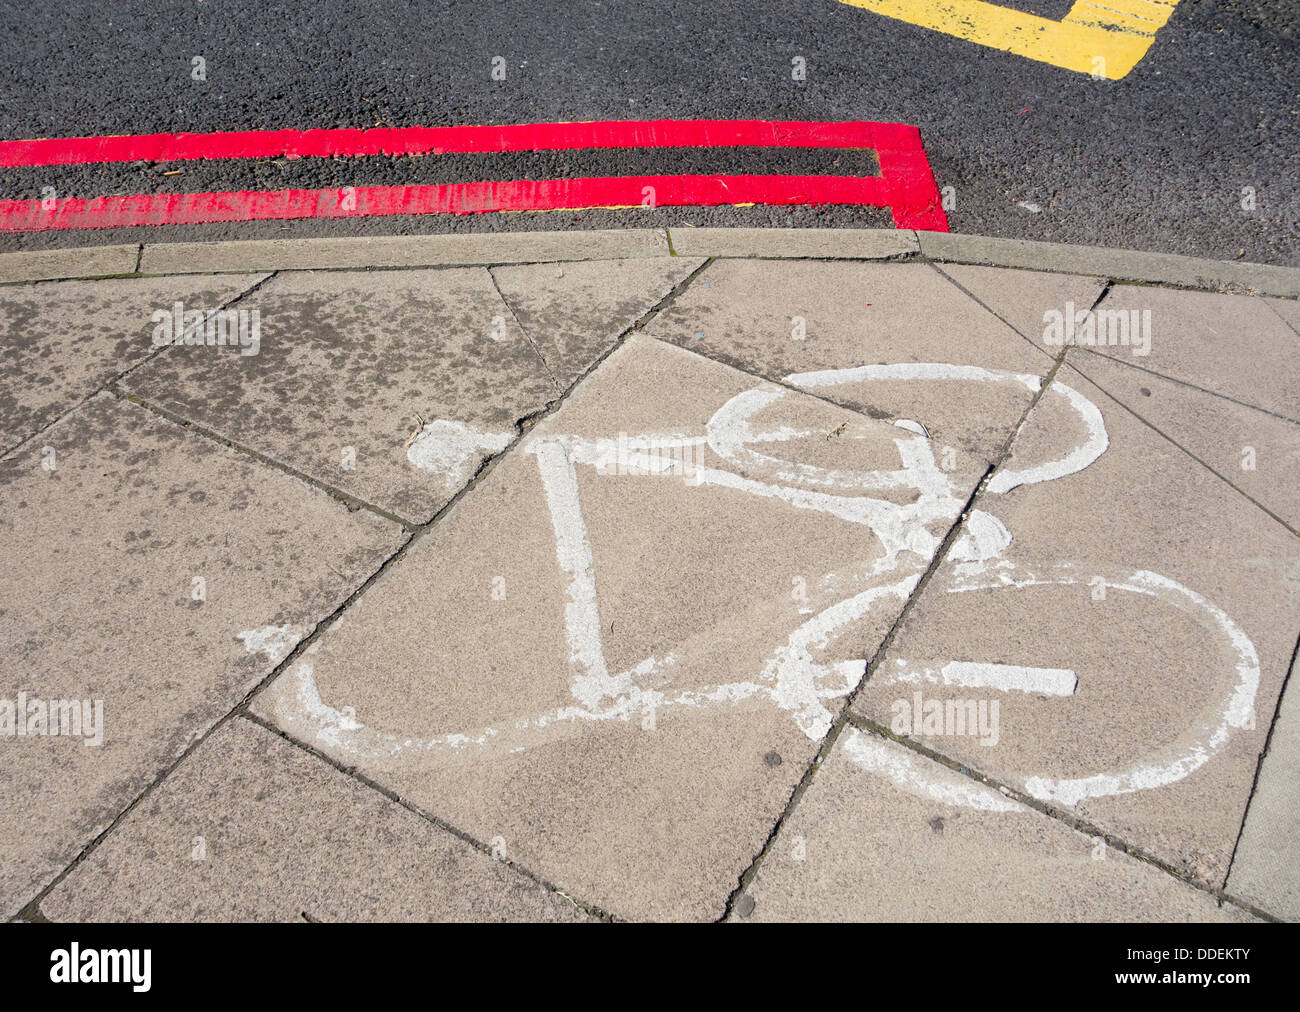 Double red lines near cycle lane at hospital entrance - Stock Image